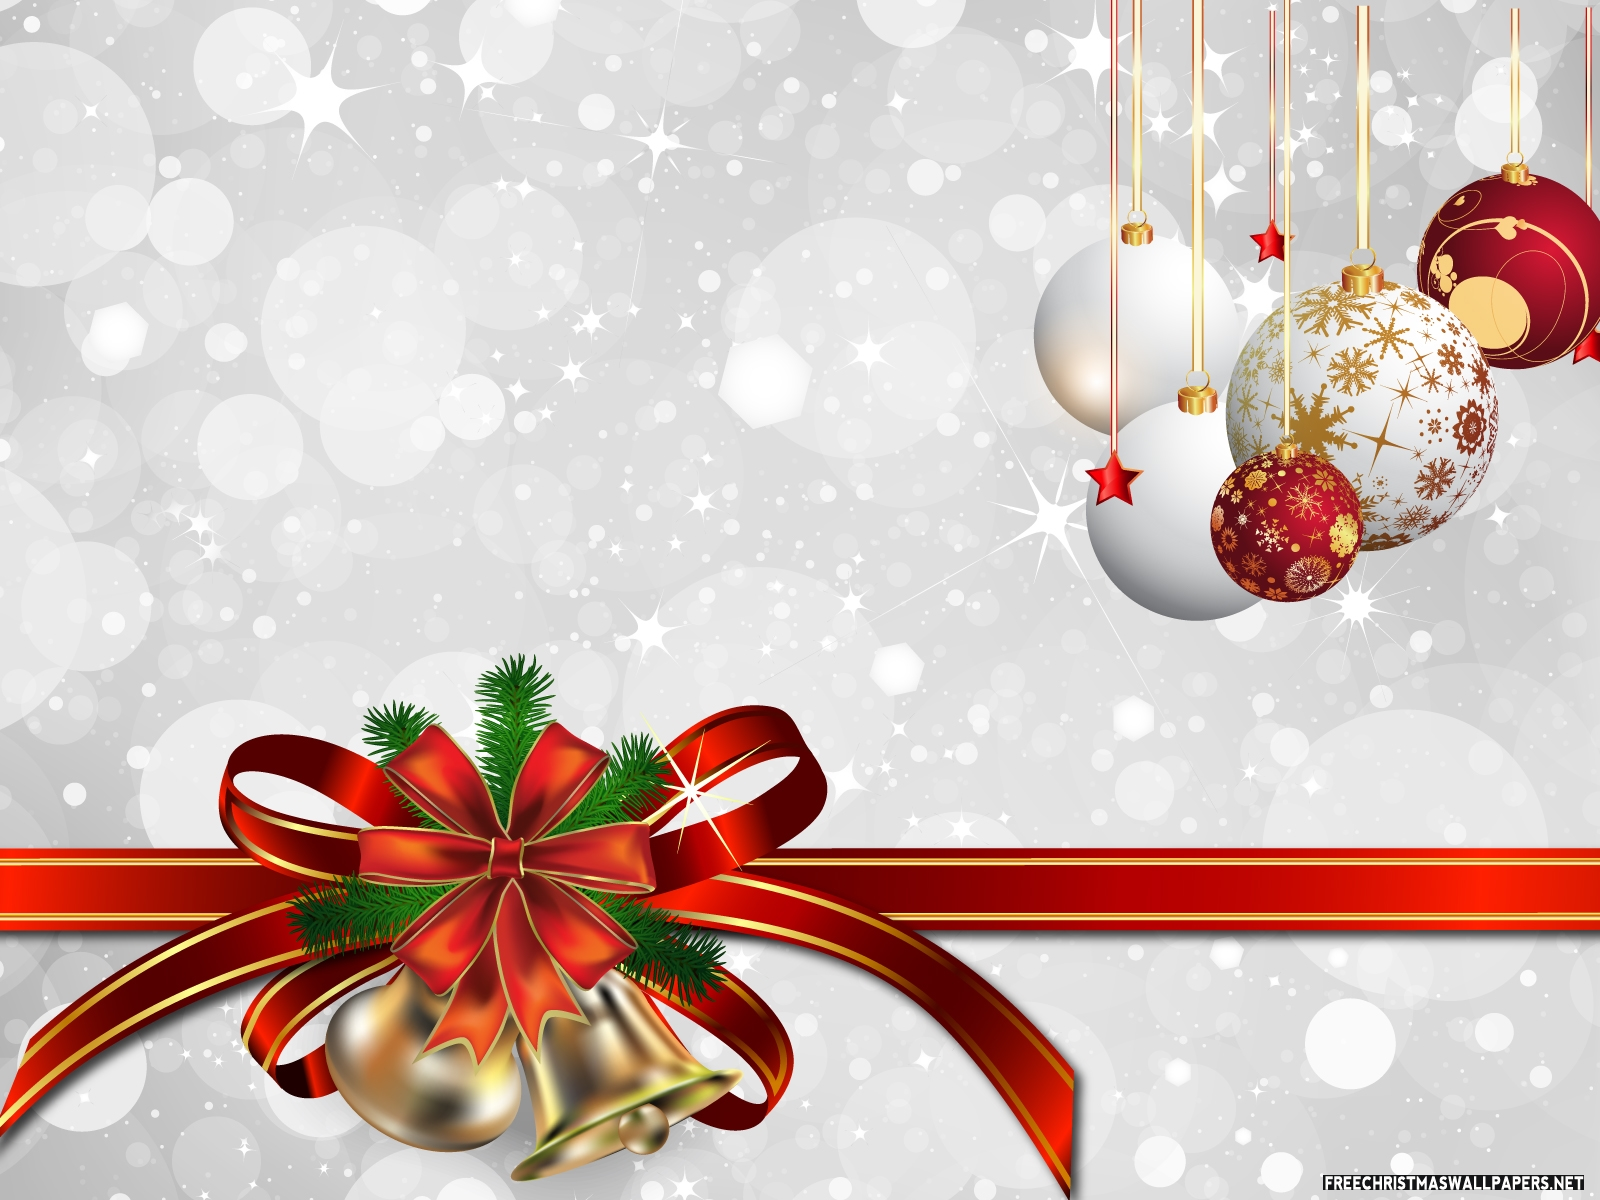 45 New Collection of HD Christmas Wallpapers PSDreview 1600x1200